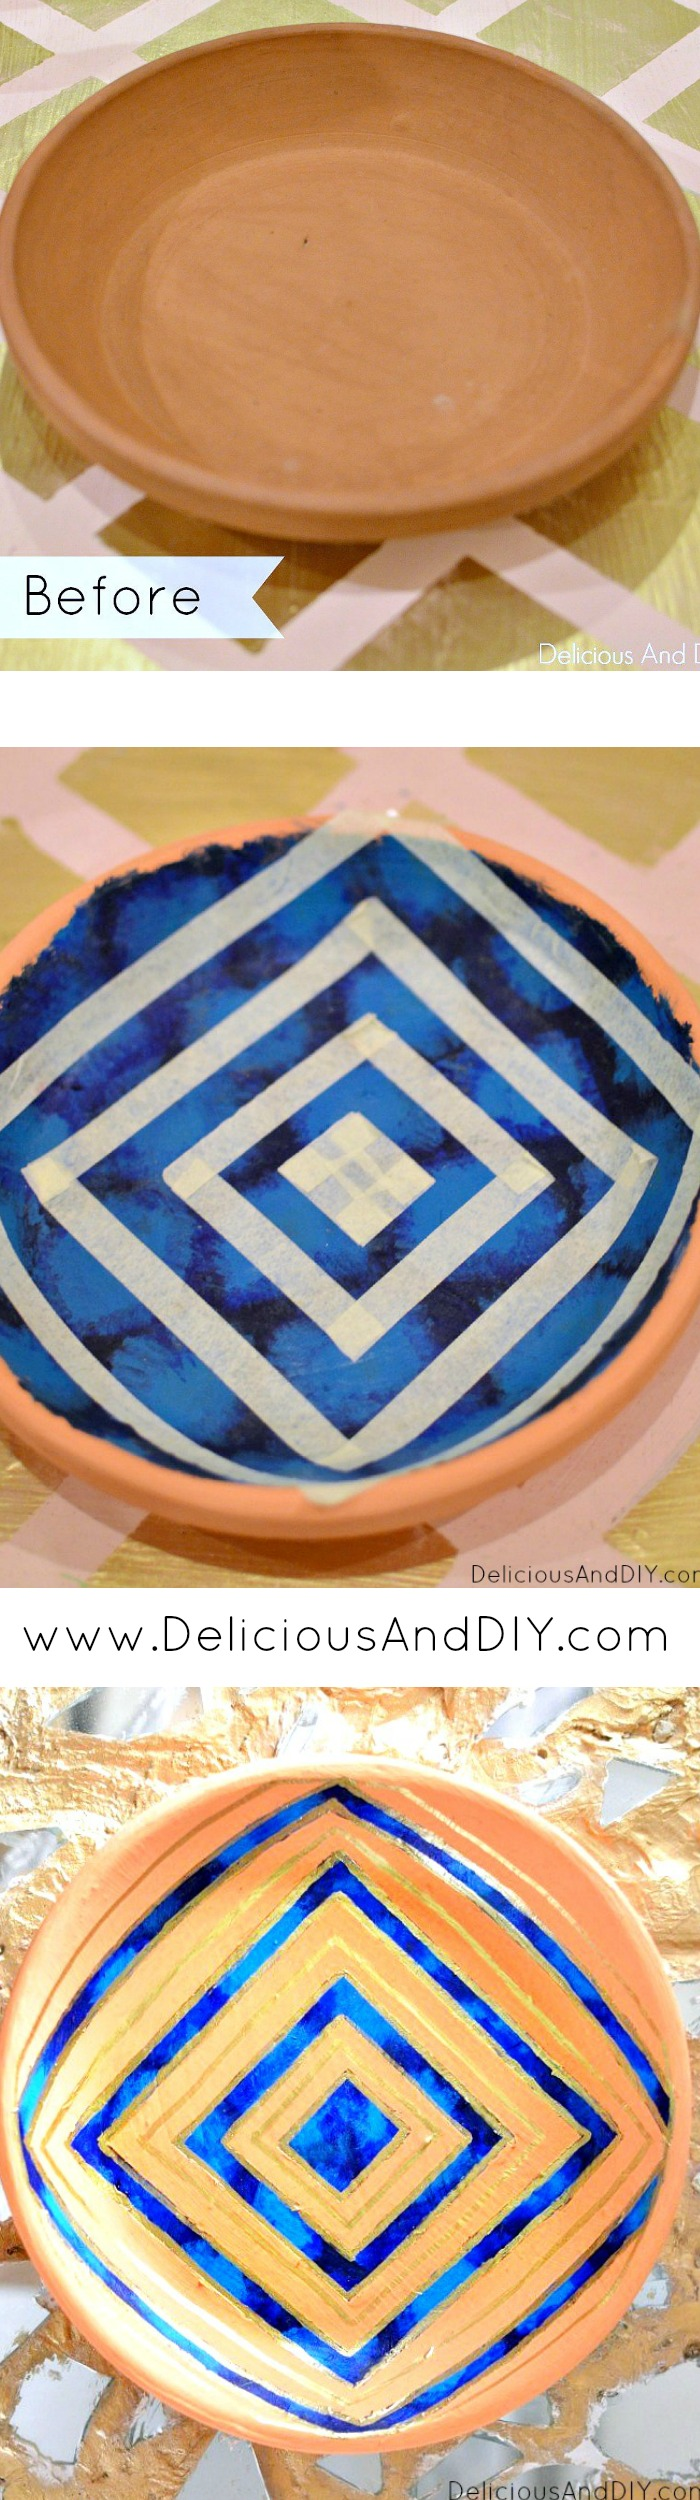 Hand-Painted-Bowl-Makeover- Delicious And DIY